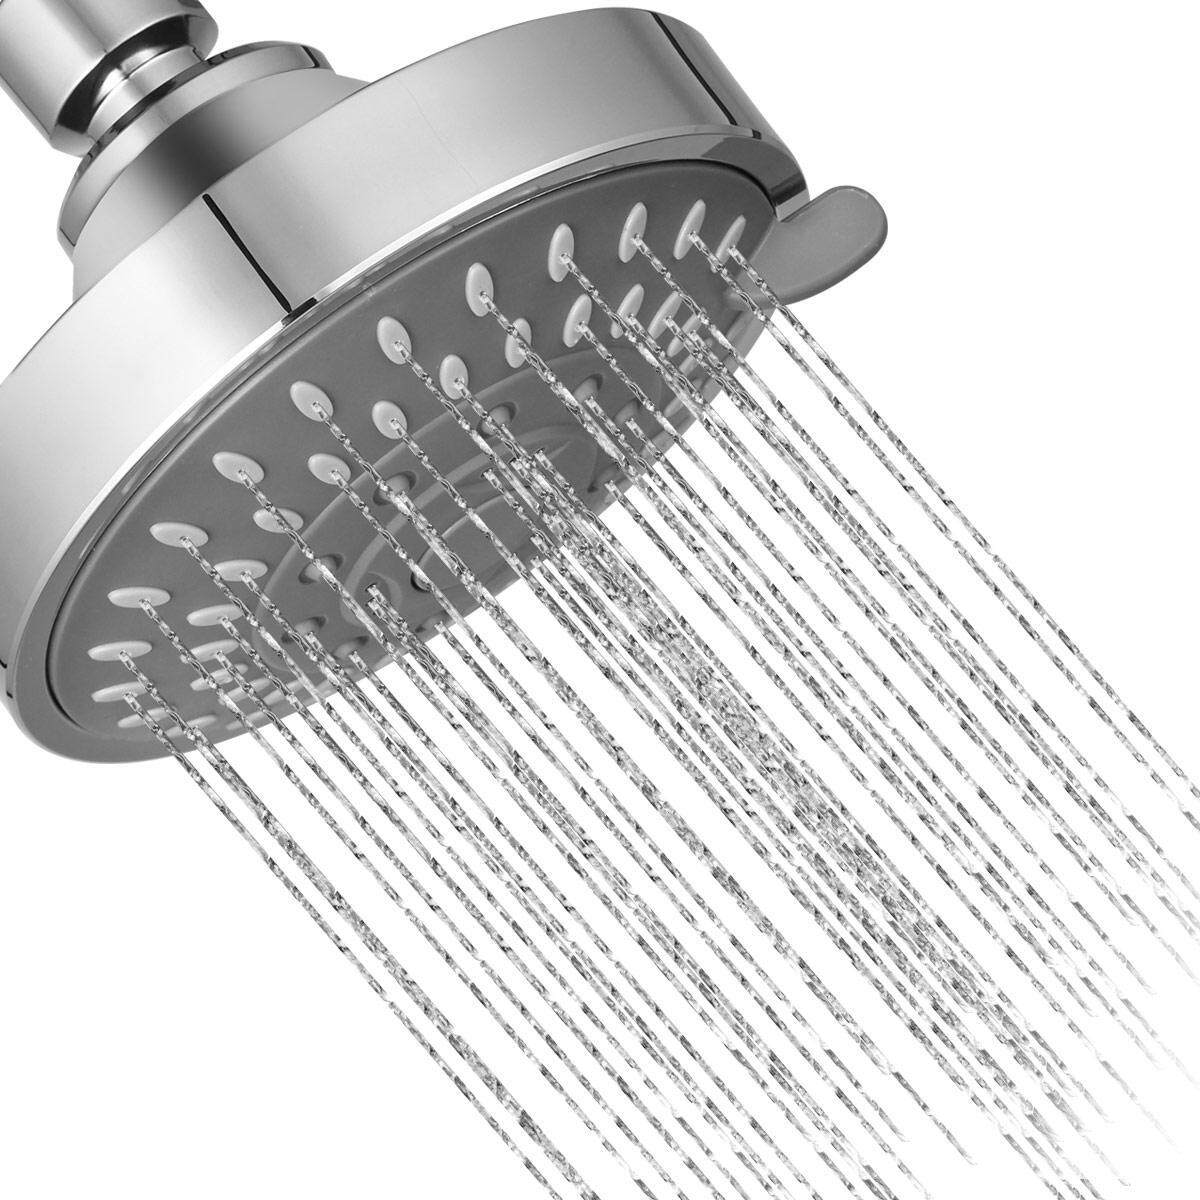 BuyBowie High Pressure Shower Head - 4 Inch Anti-leak Anti-clog 5 Function Chrome Showerhead - Adjustable Metal Swivel Ball Joint with Filter - Ultimate Shower Experience Even at Low Pressure and Water Flow